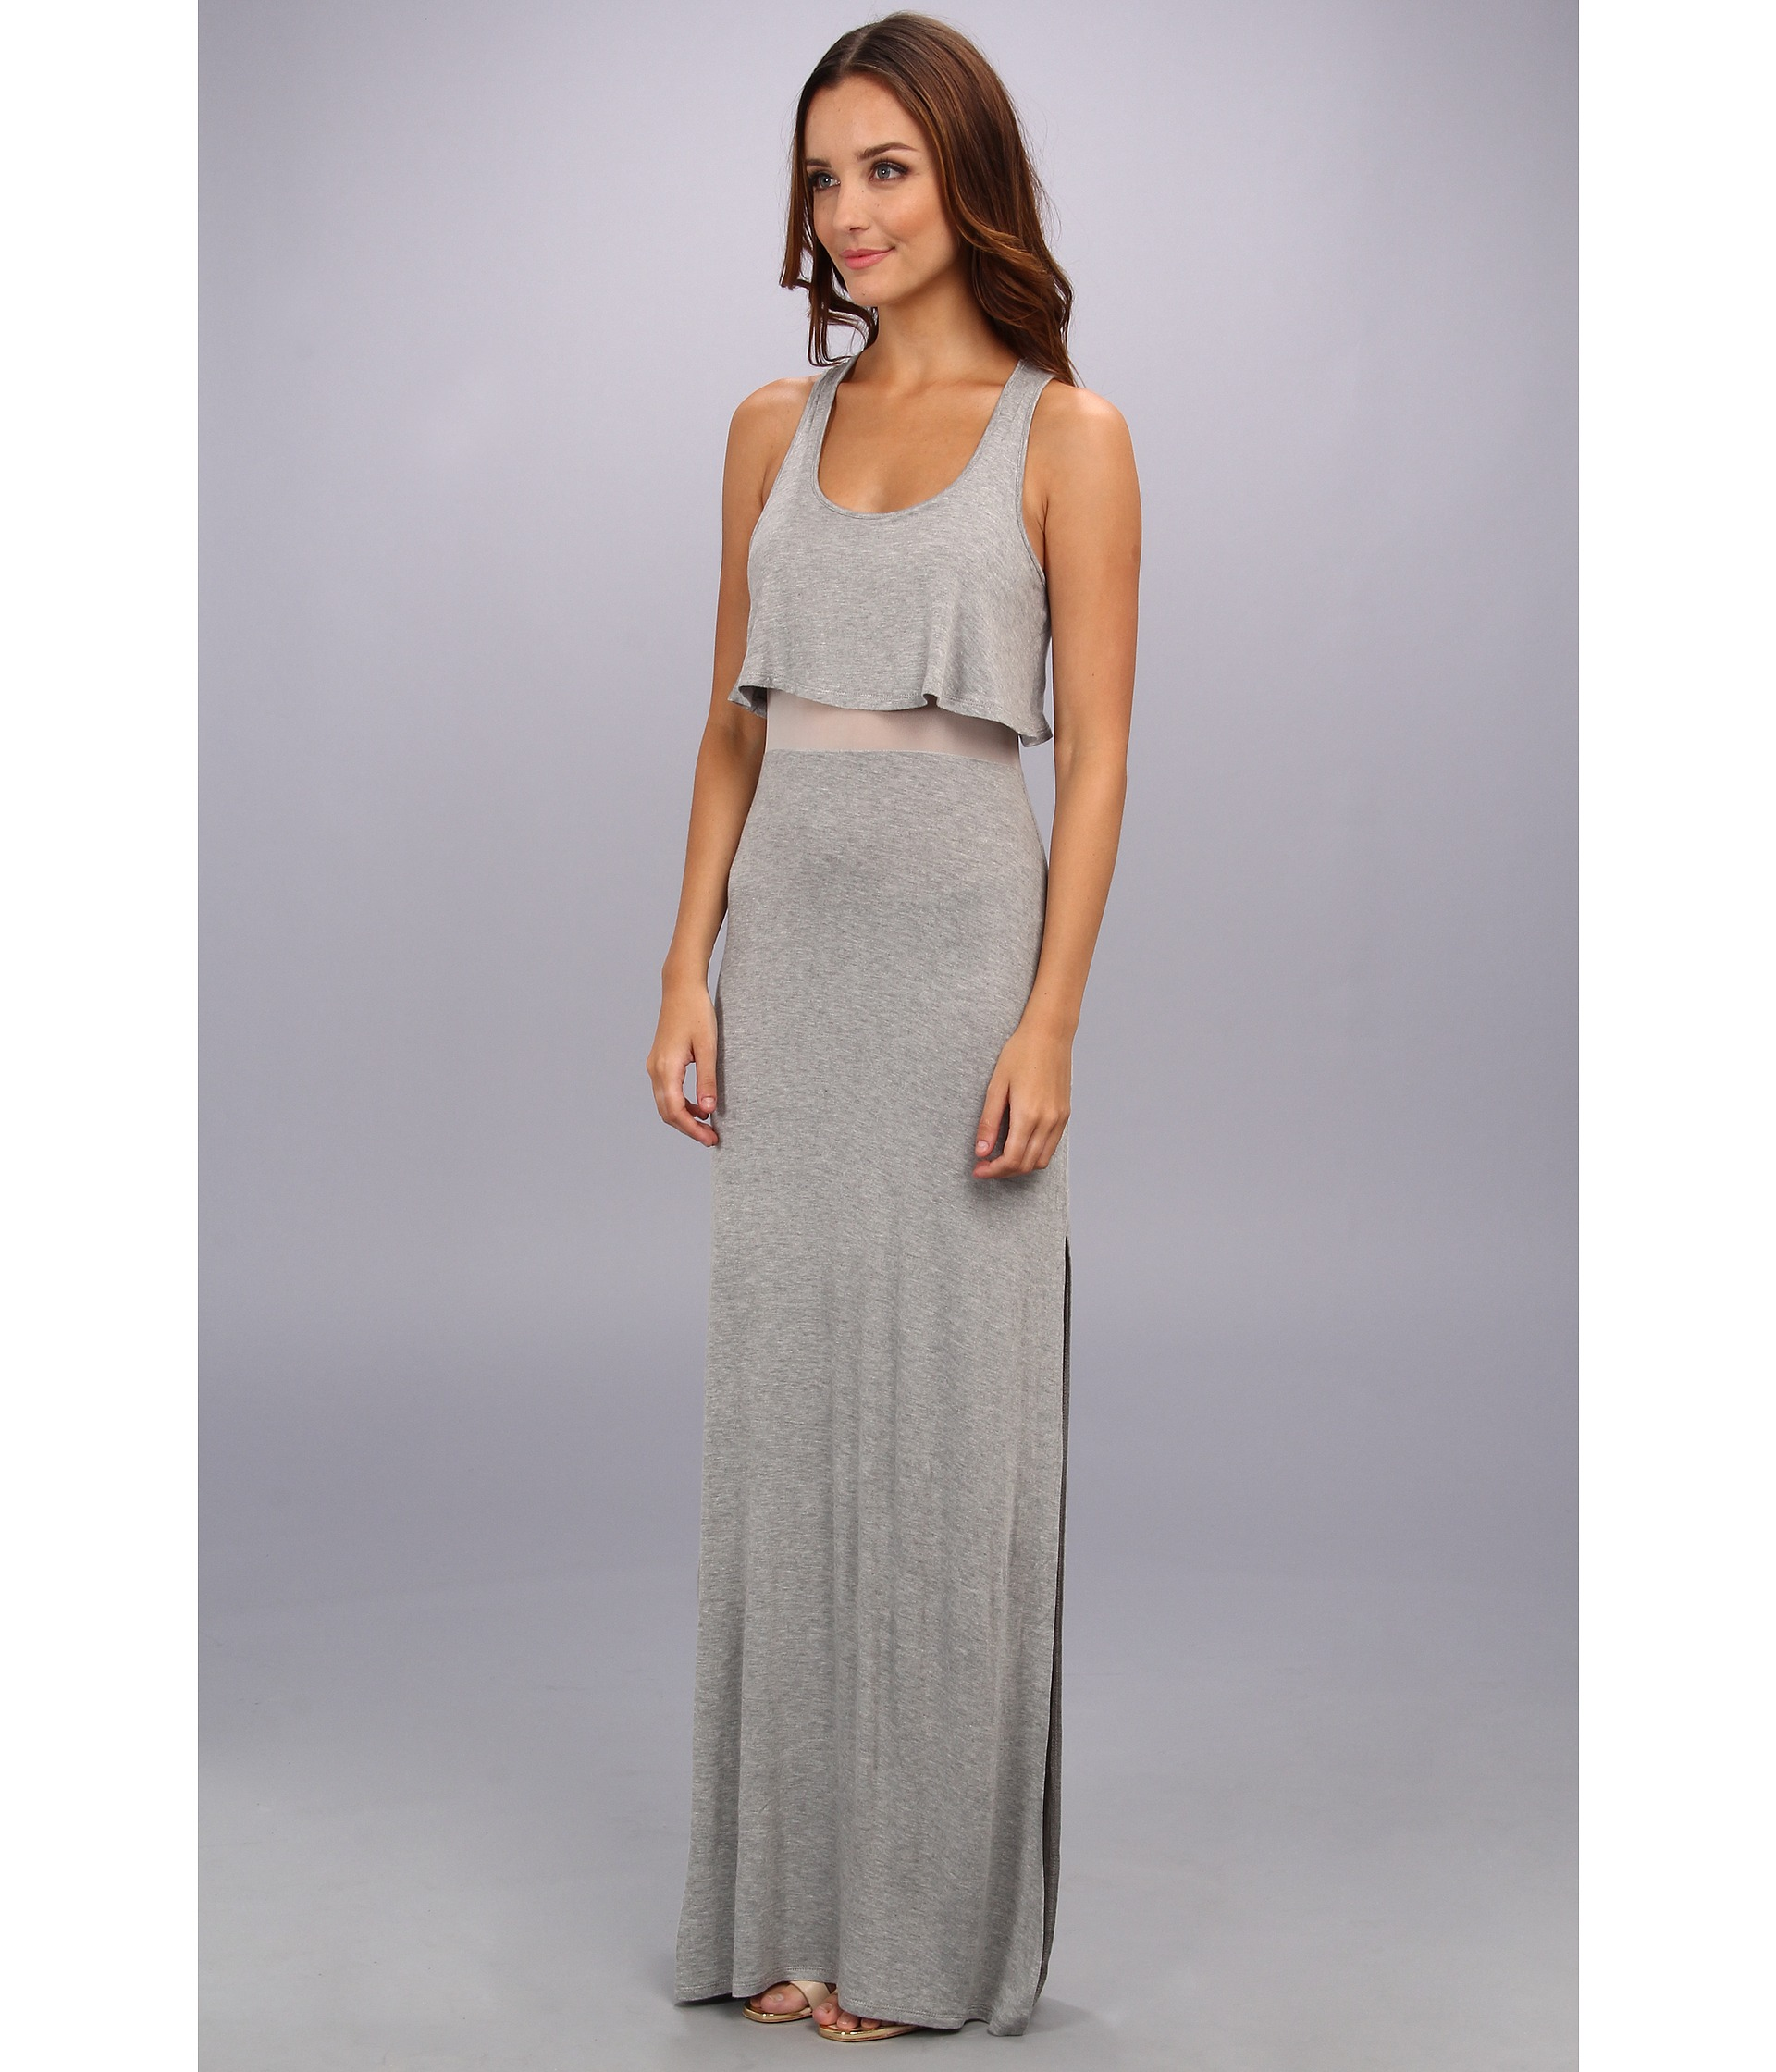 Maxi Dresses for Women add a timeless look to your everyday style. With a look and price you'll love, maxi dresses from Kohl's will become favorite options for work and weekend wearl! Kohl's has dresses from all of the most popular brands in the business, including Candie's maxi dresses.